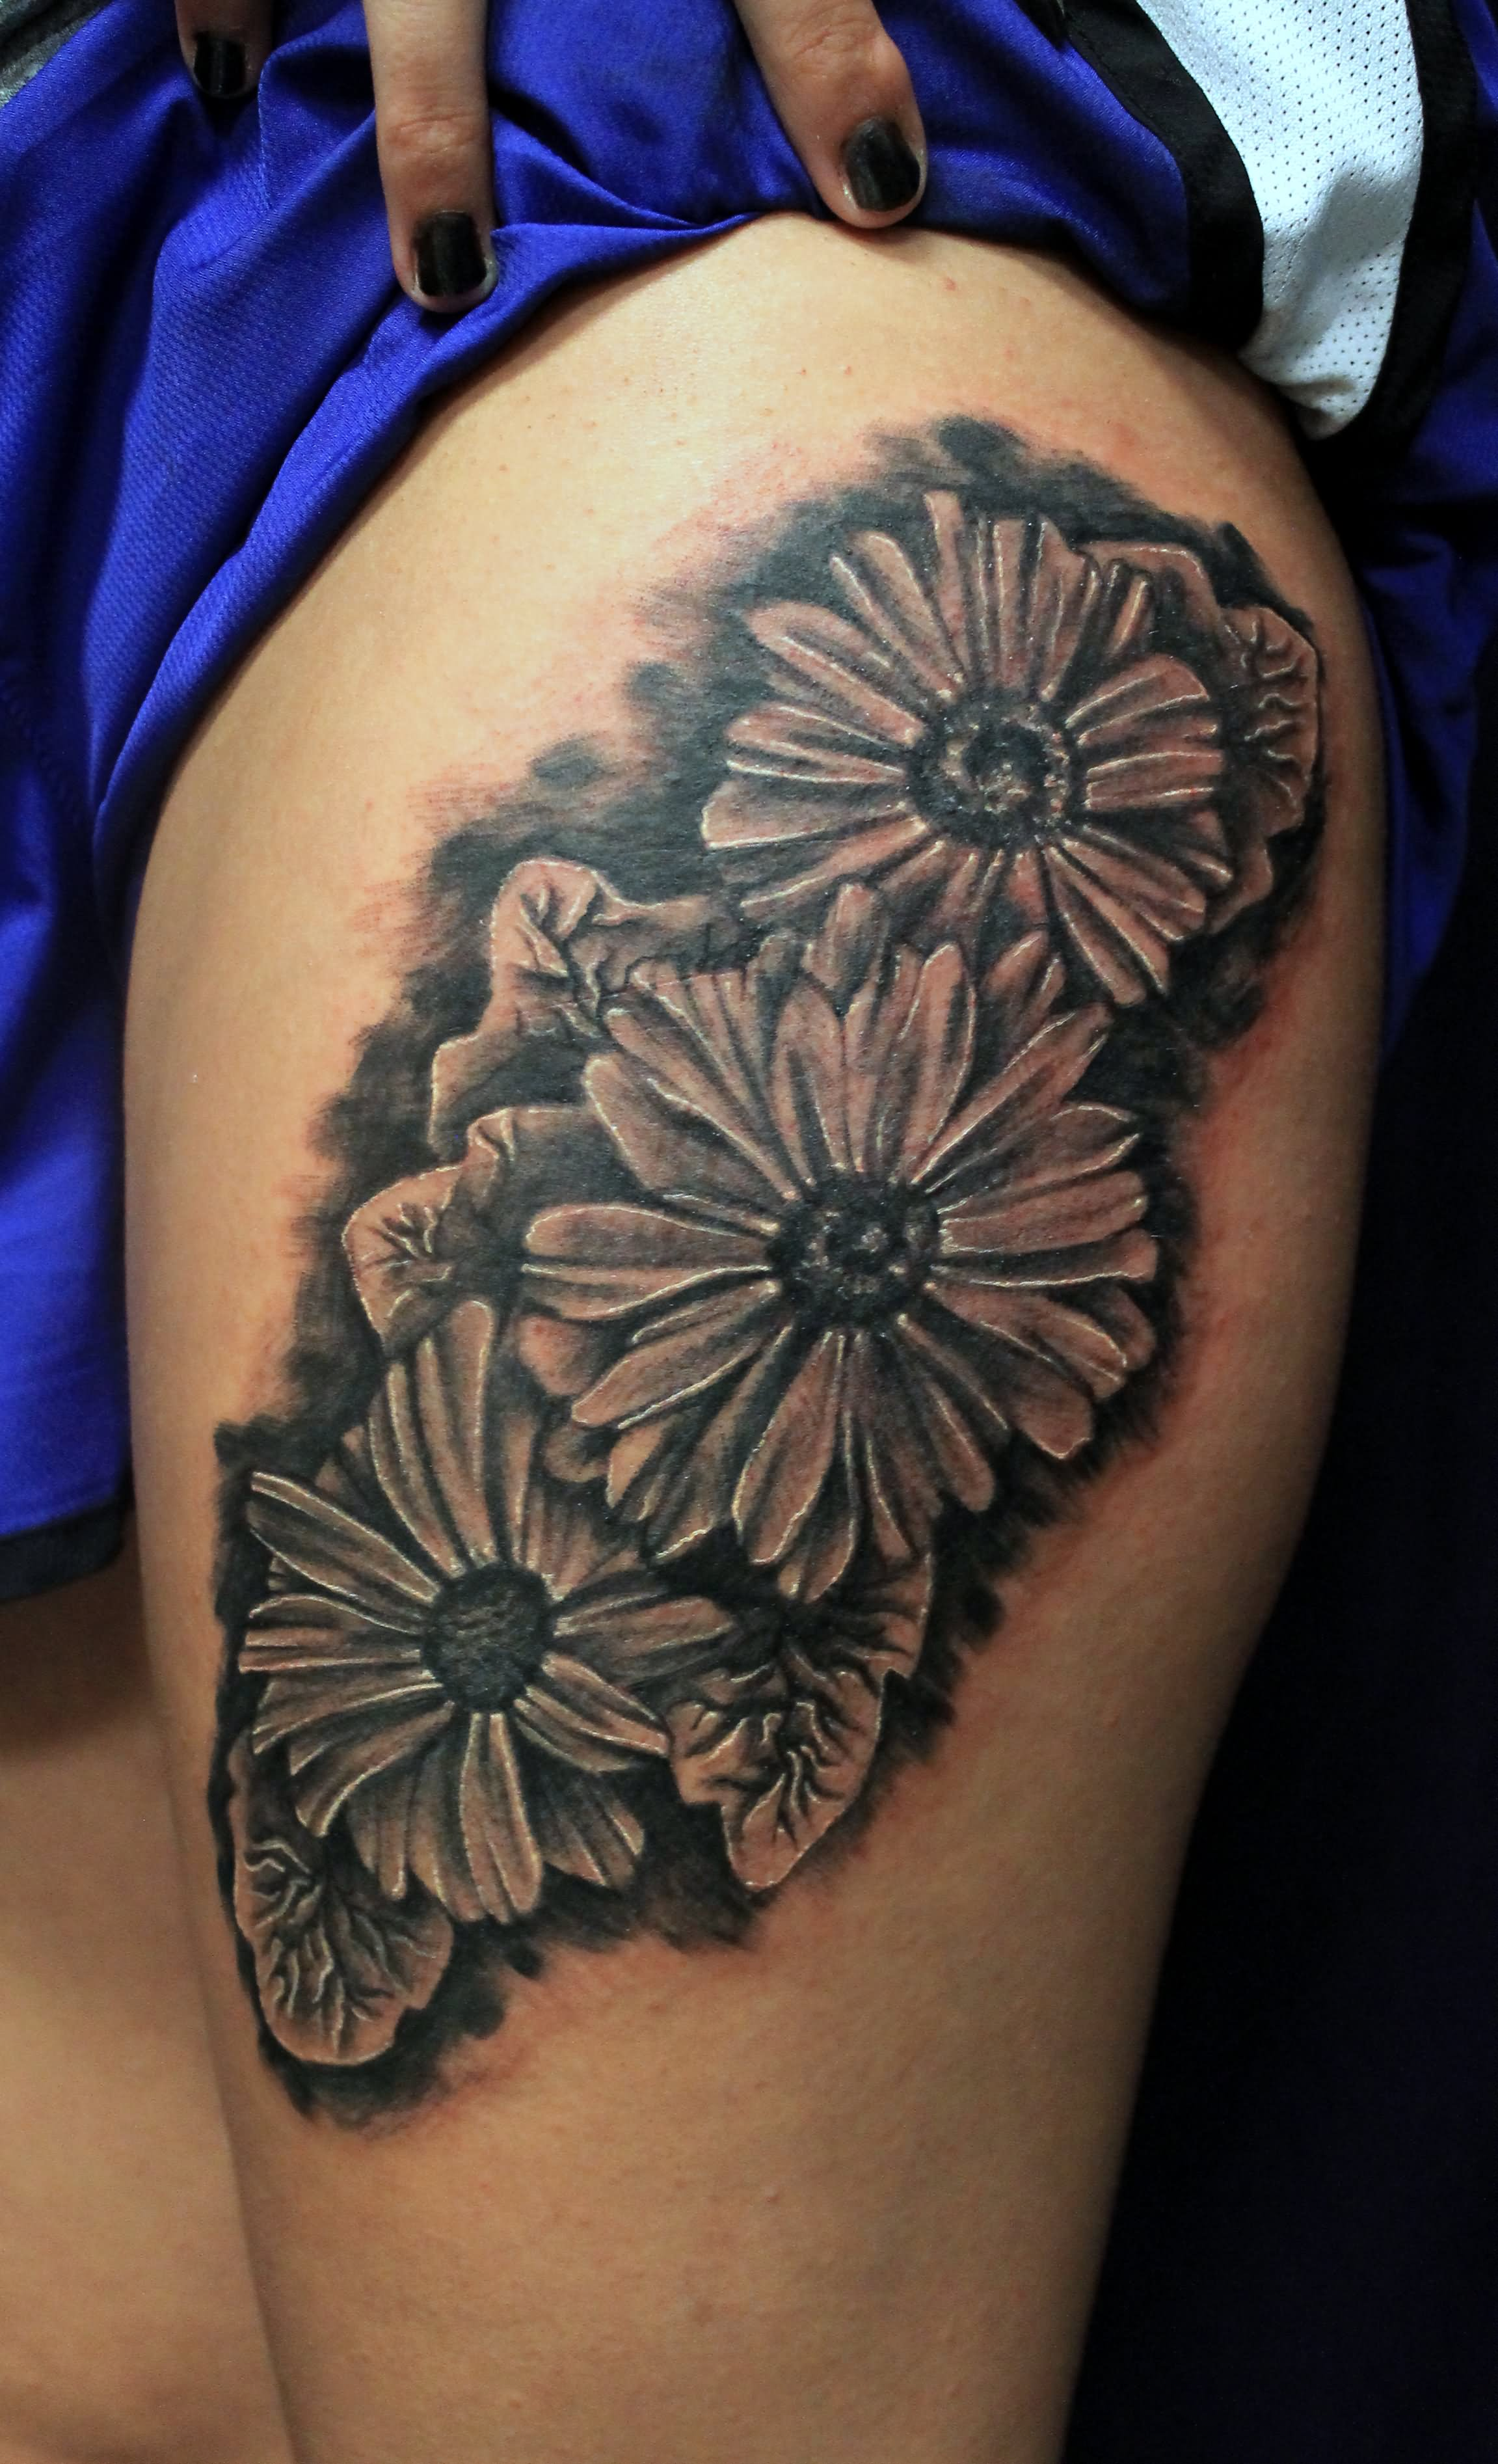 Black And White Flower Tattoos On Wrist: 40+ Black And White Daisy Tattoos